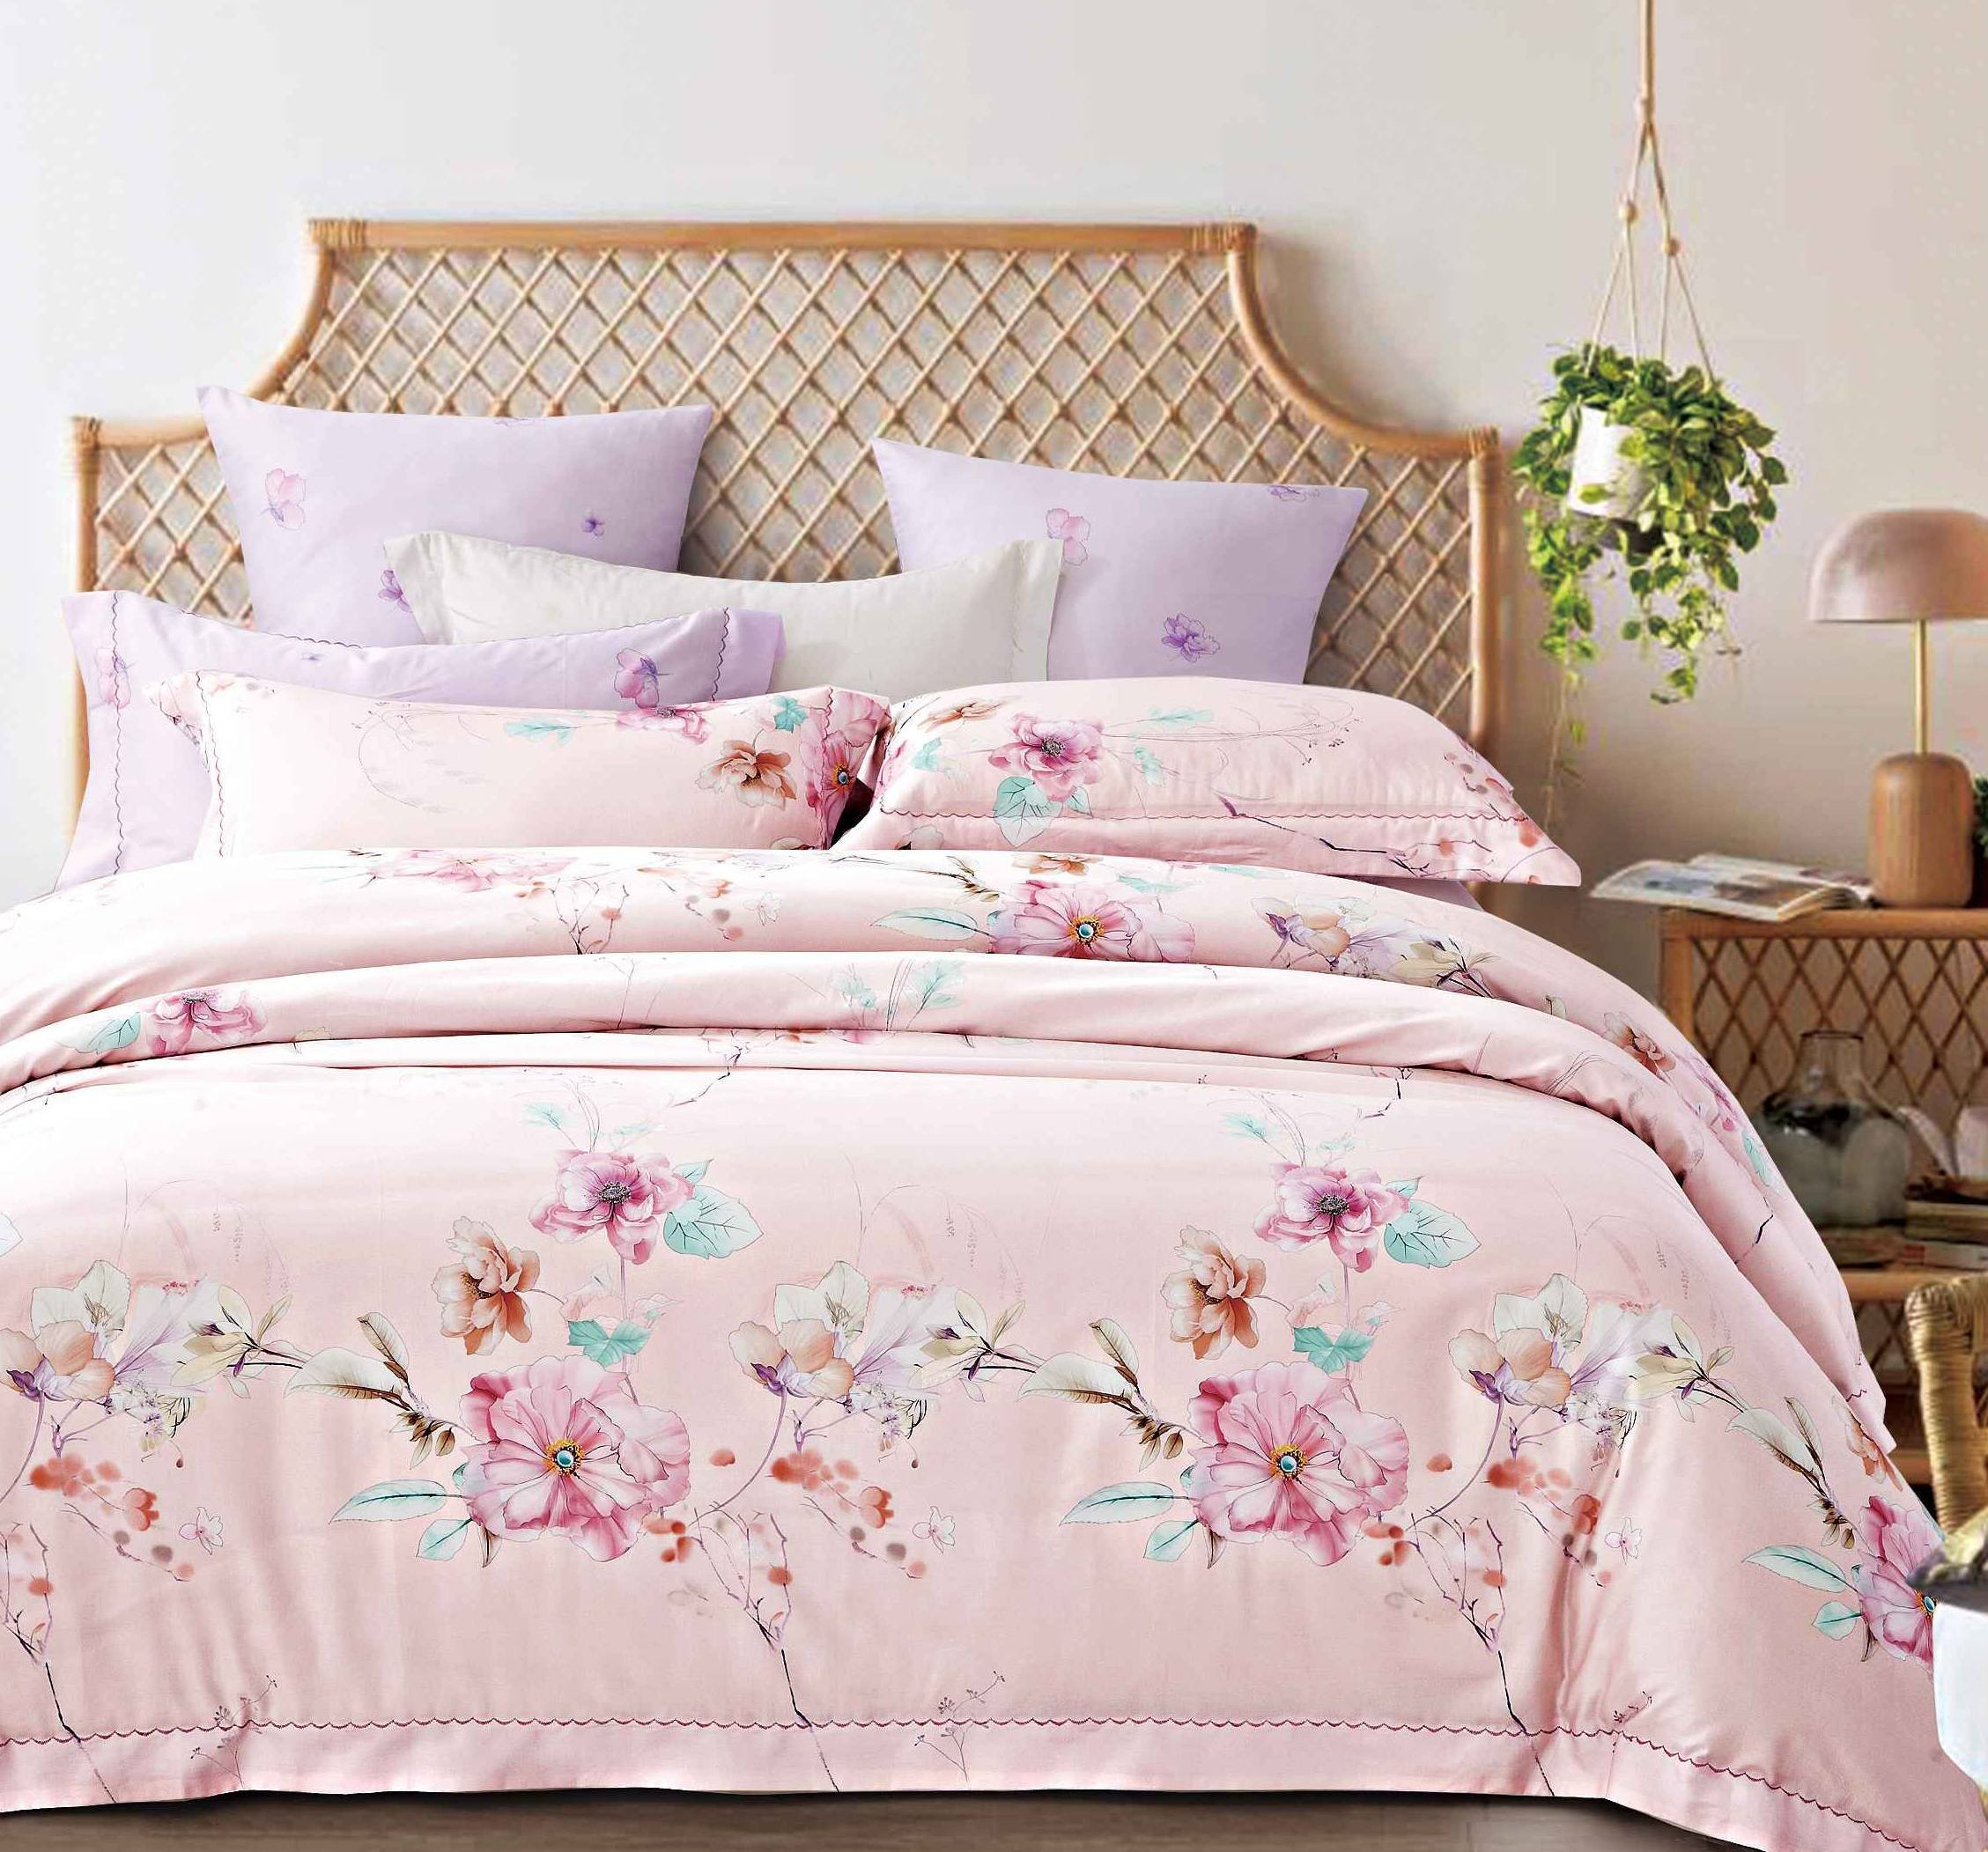 Flower Patterns Bedding Set Long-staple Cotton Bright Color 171469